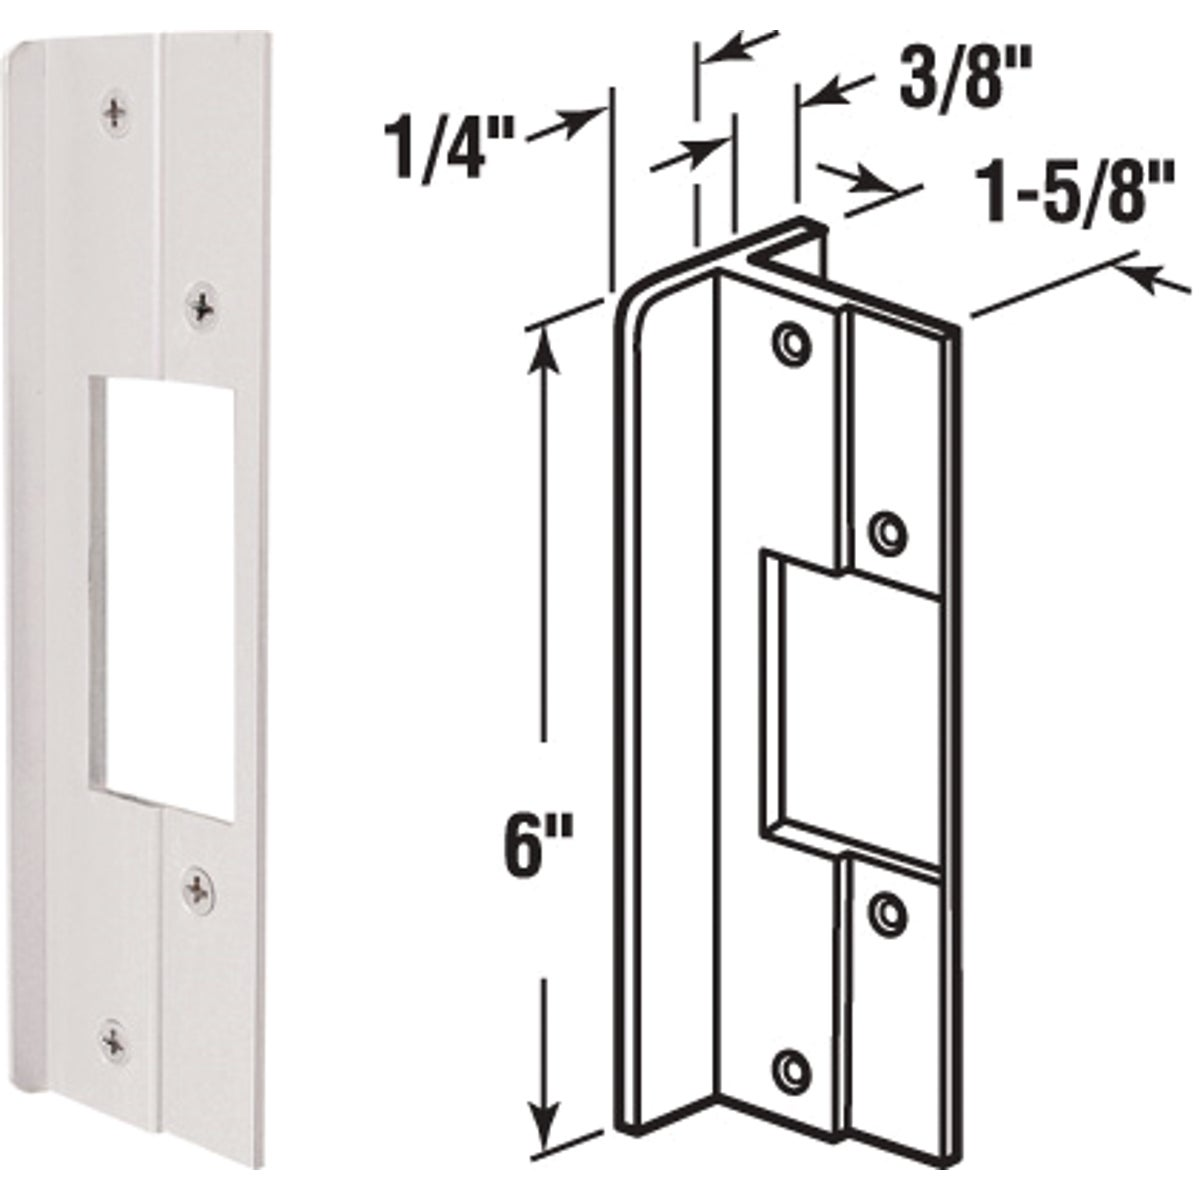 "6"" ALUM LATCH GUARD - U 9481 by Prime Line Products"